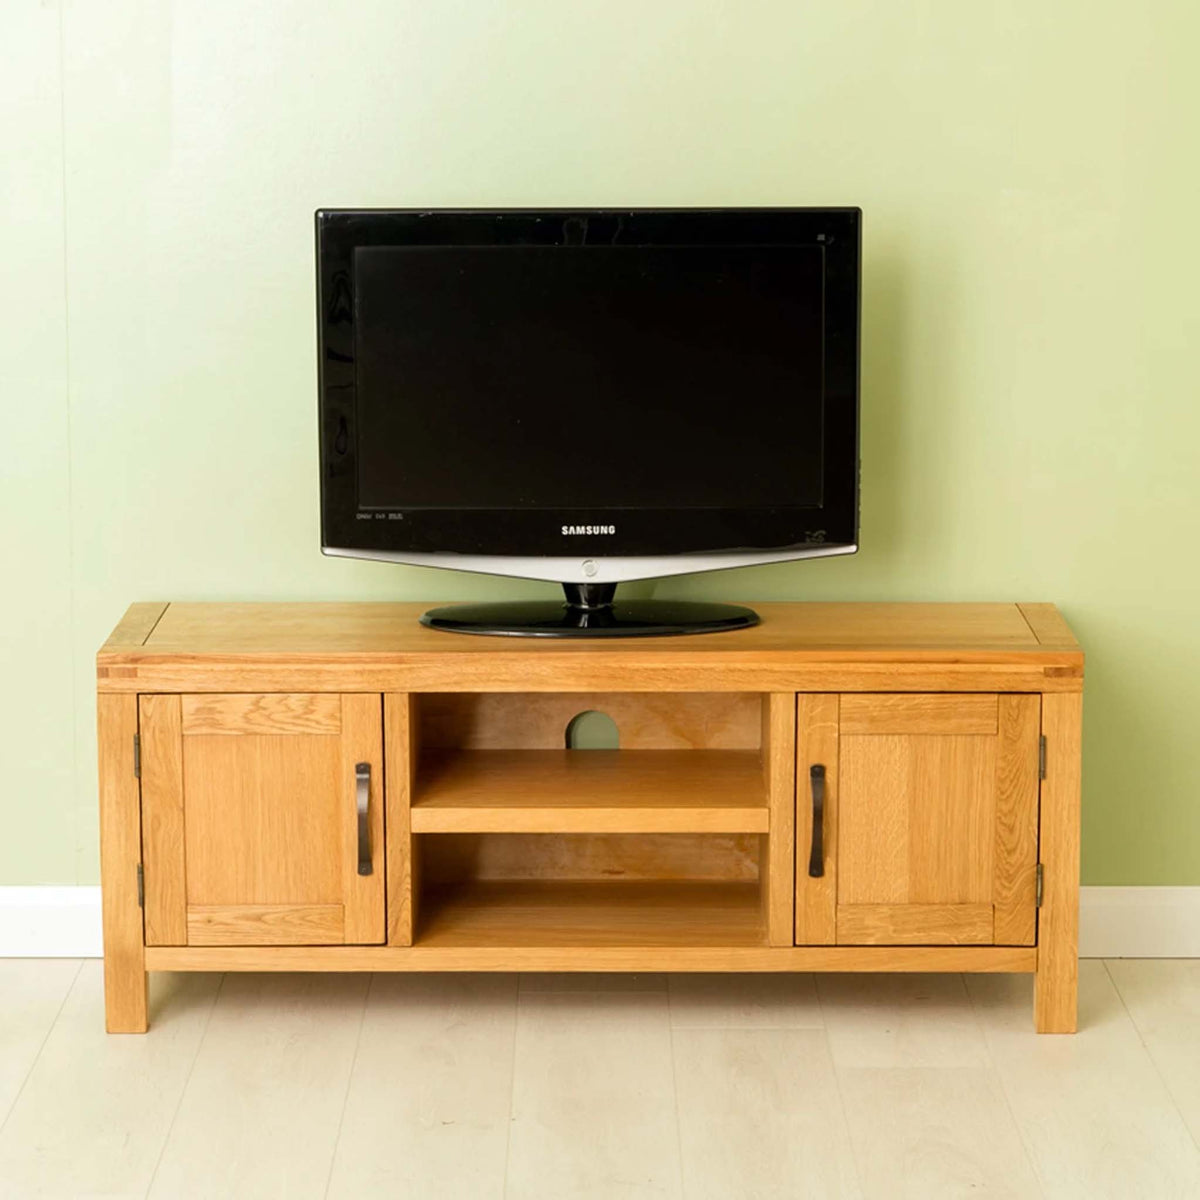 The Abbey Waxed 120cm Large Oak TV Stand Storage Unit by Roseland Furniture